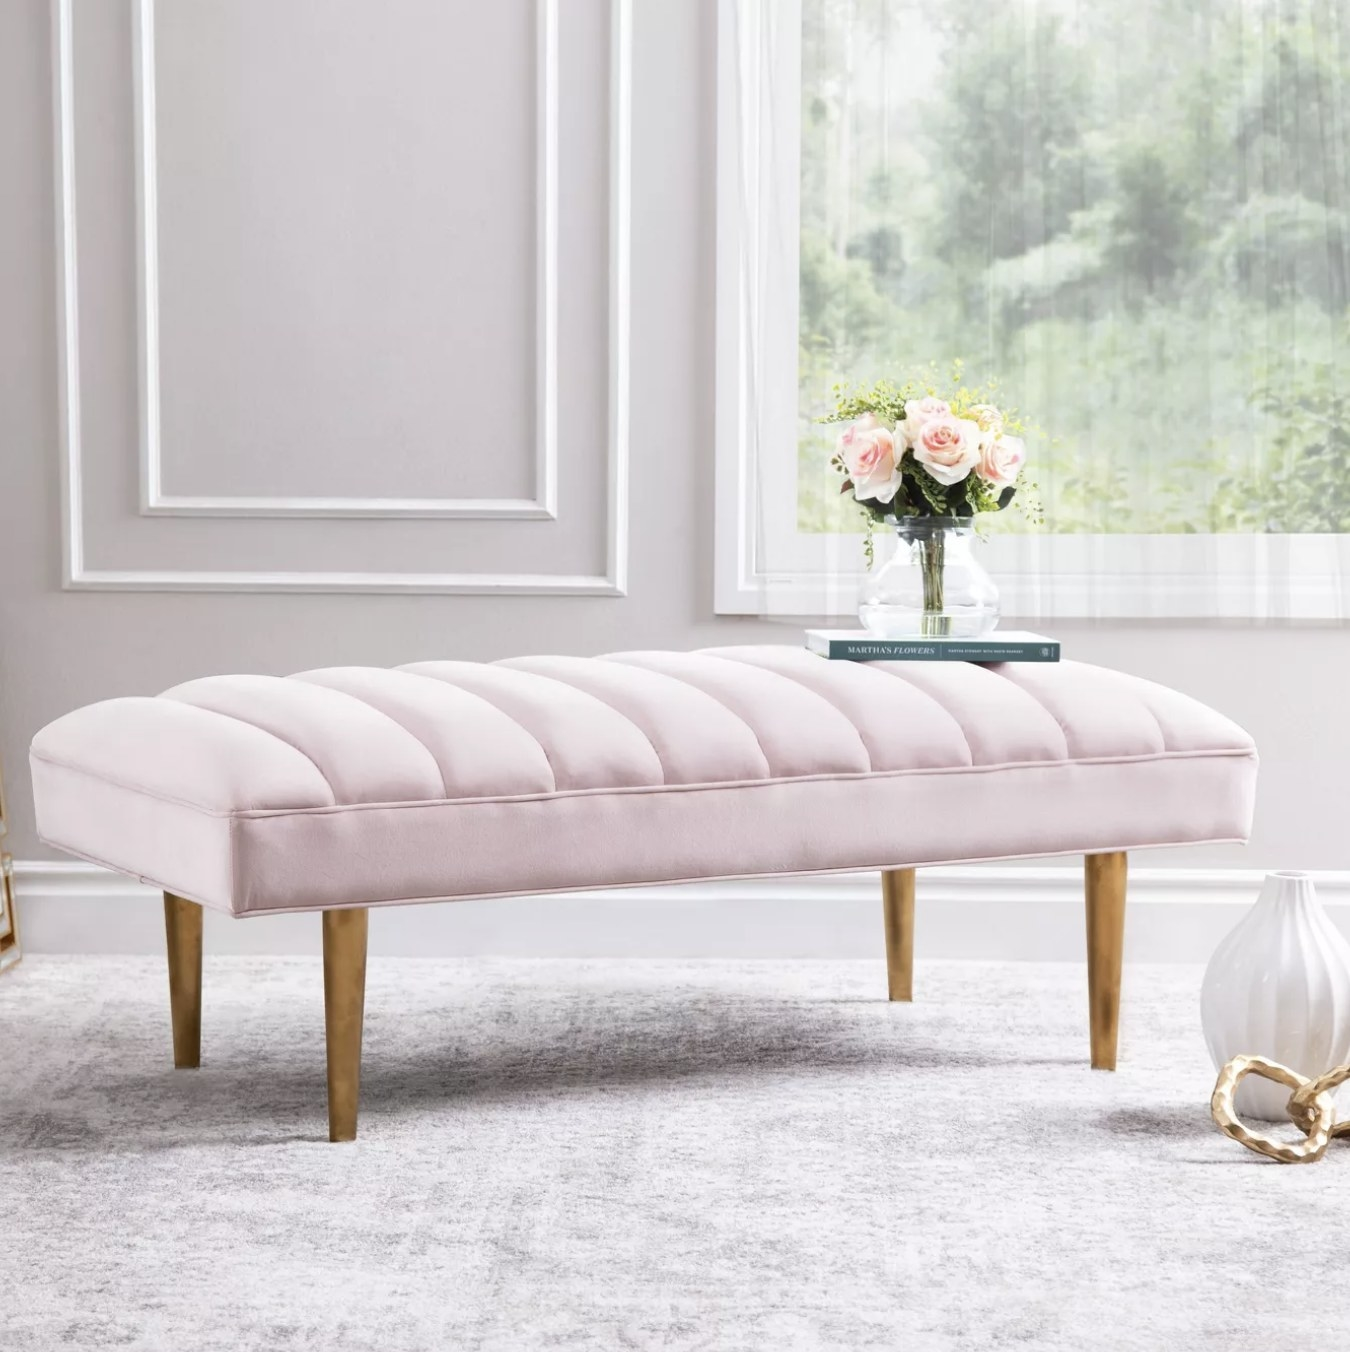 A blush tufted bench